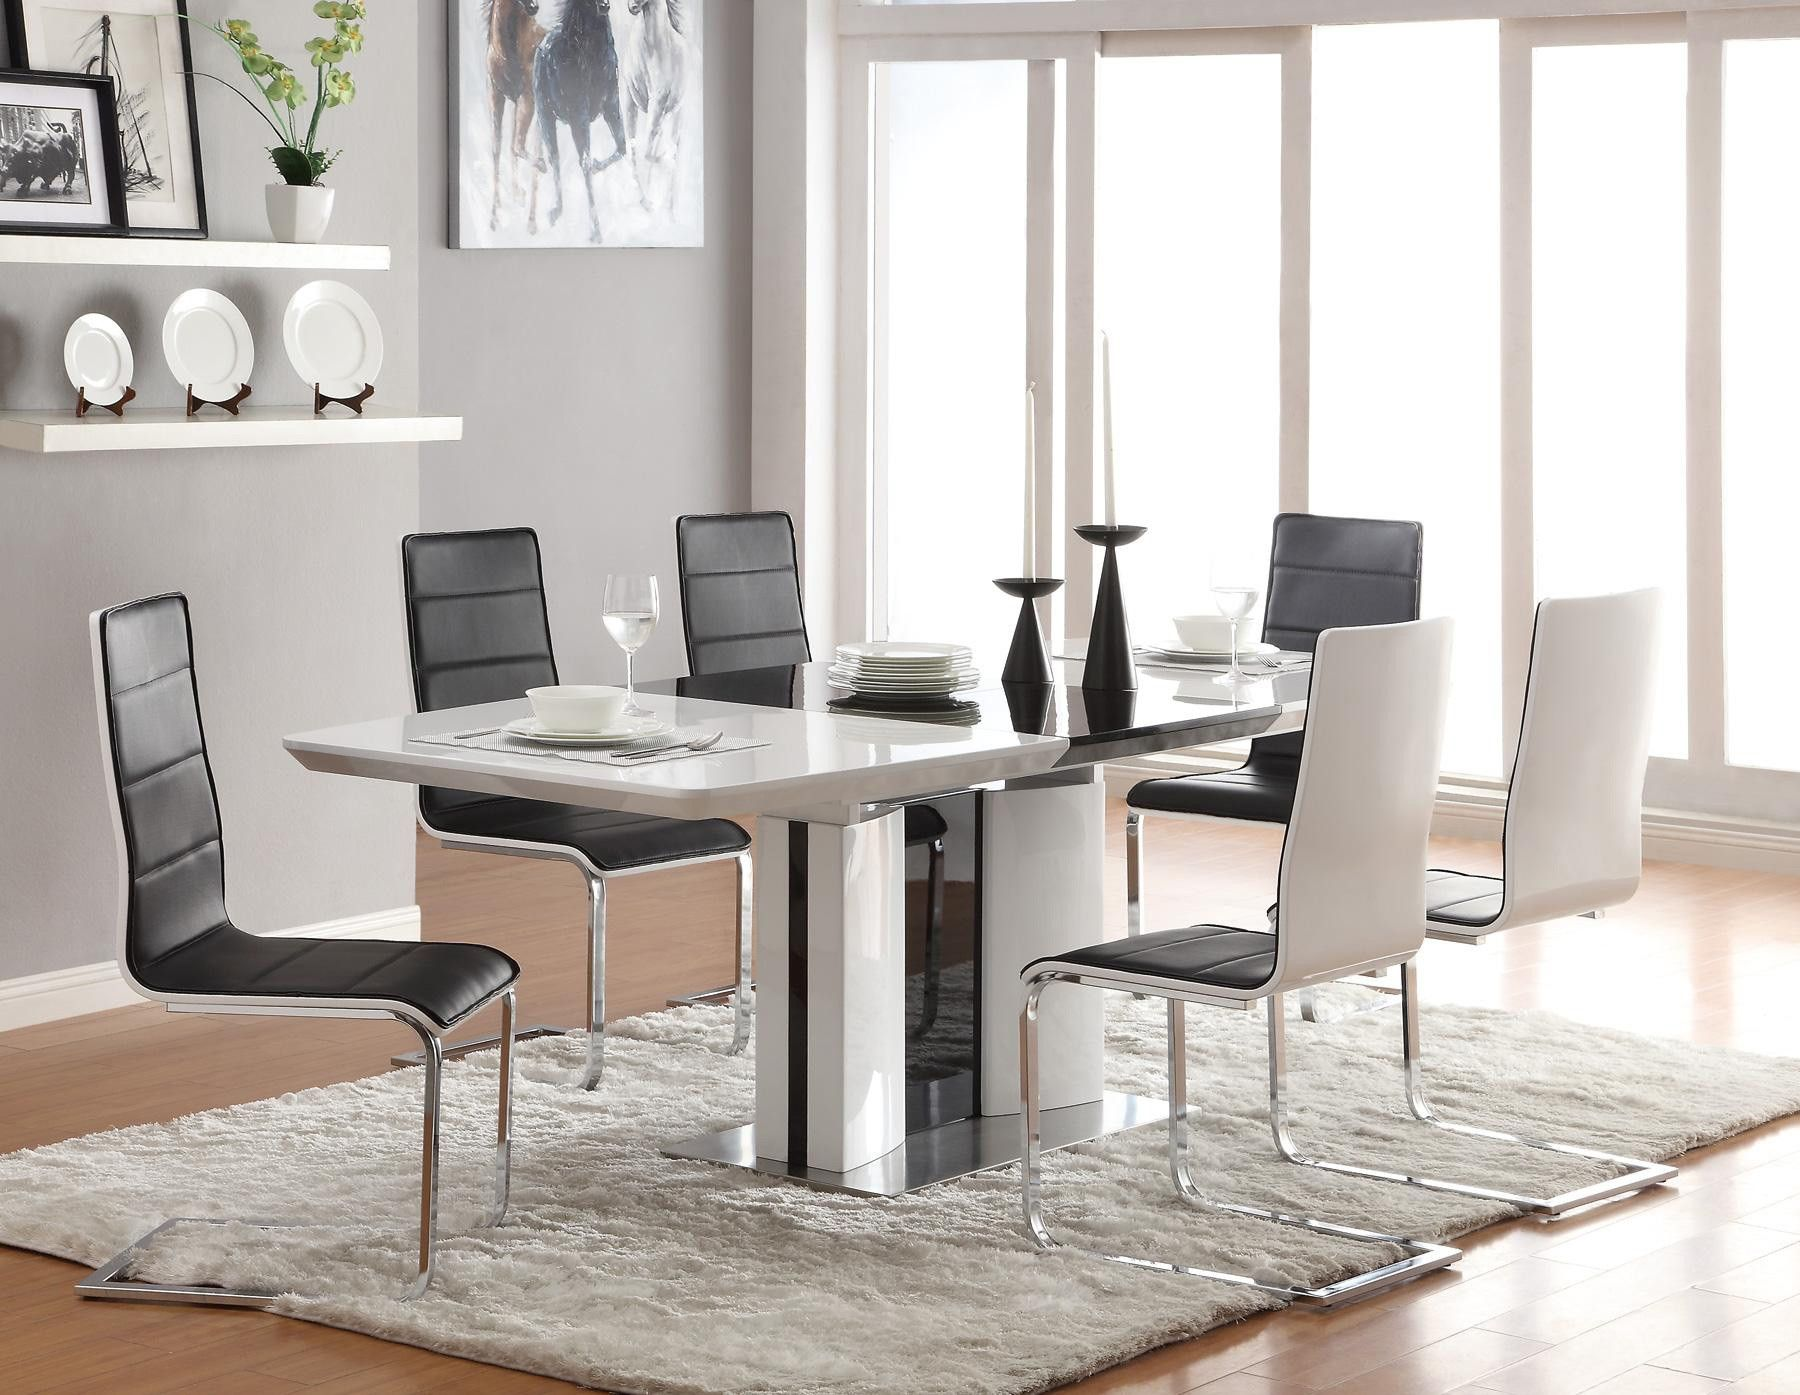 Comfortable Dining Area Using Modern Sets With Stylish